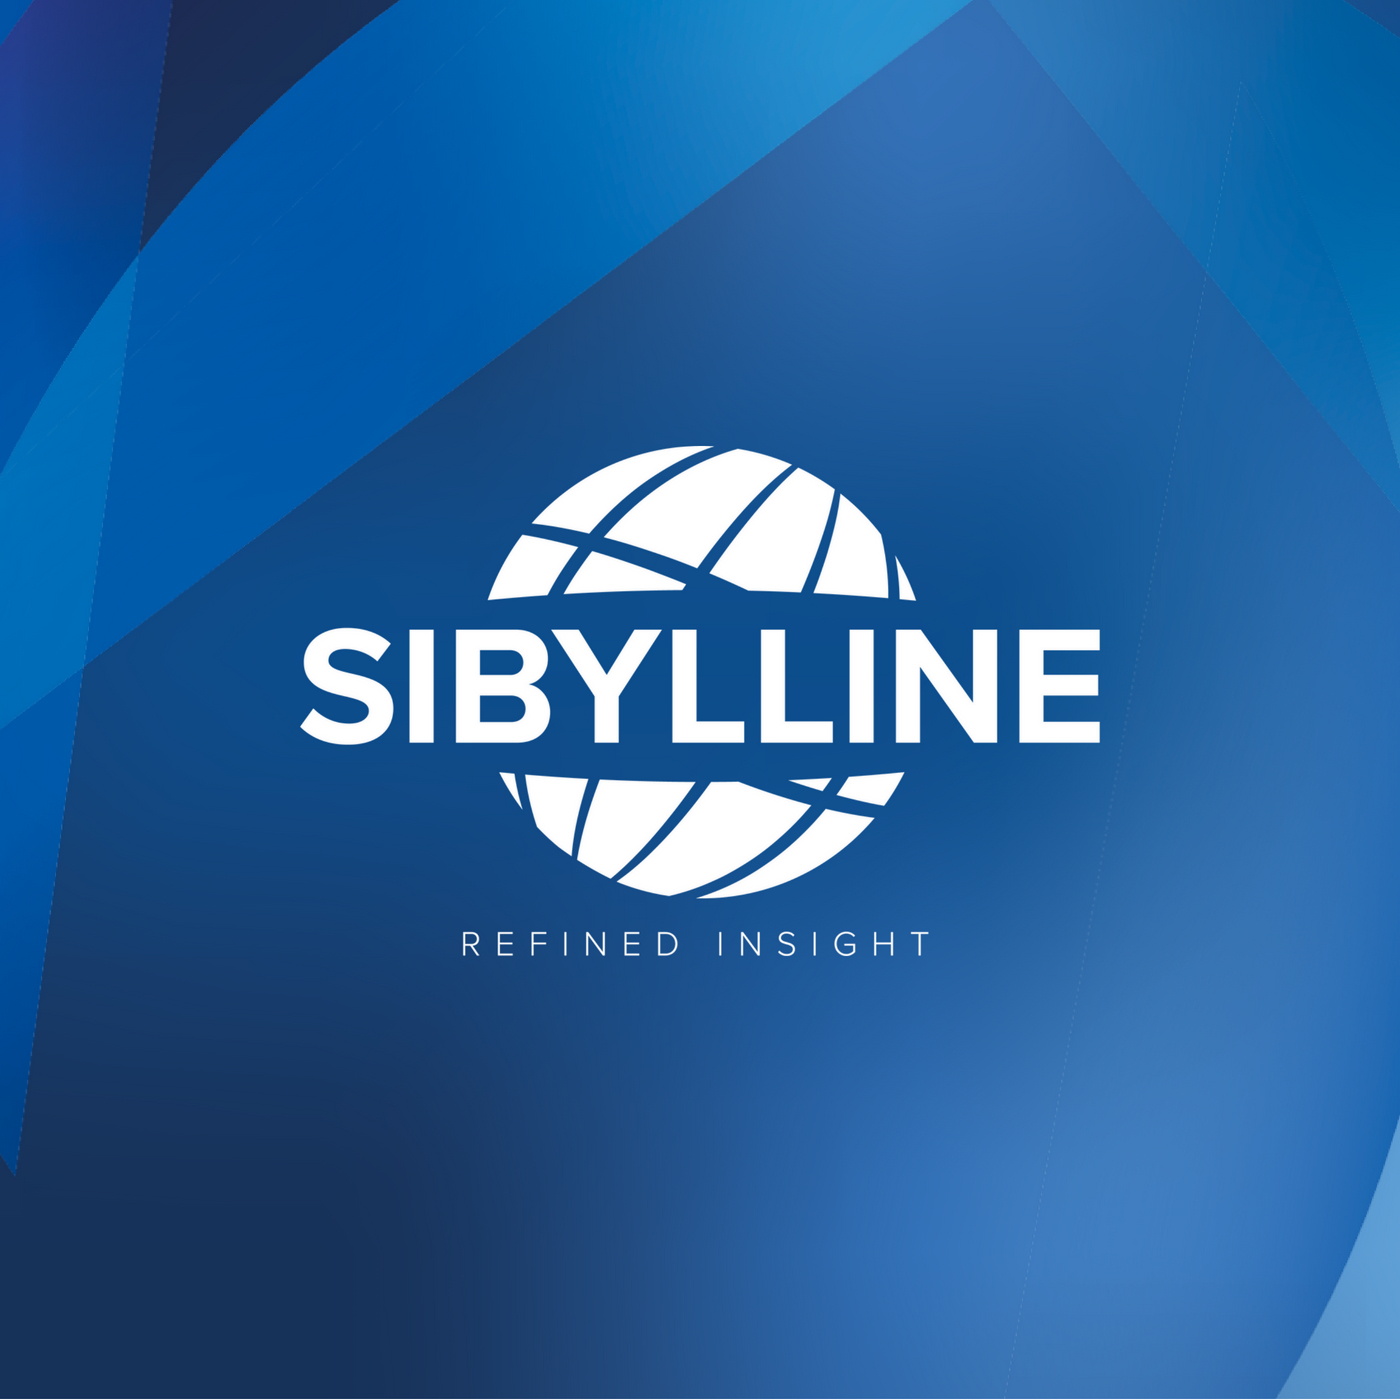 Sibylline Podcast - Sudan - Tensions Between Civilians and Transitional Military Council Drive Threats to Stability